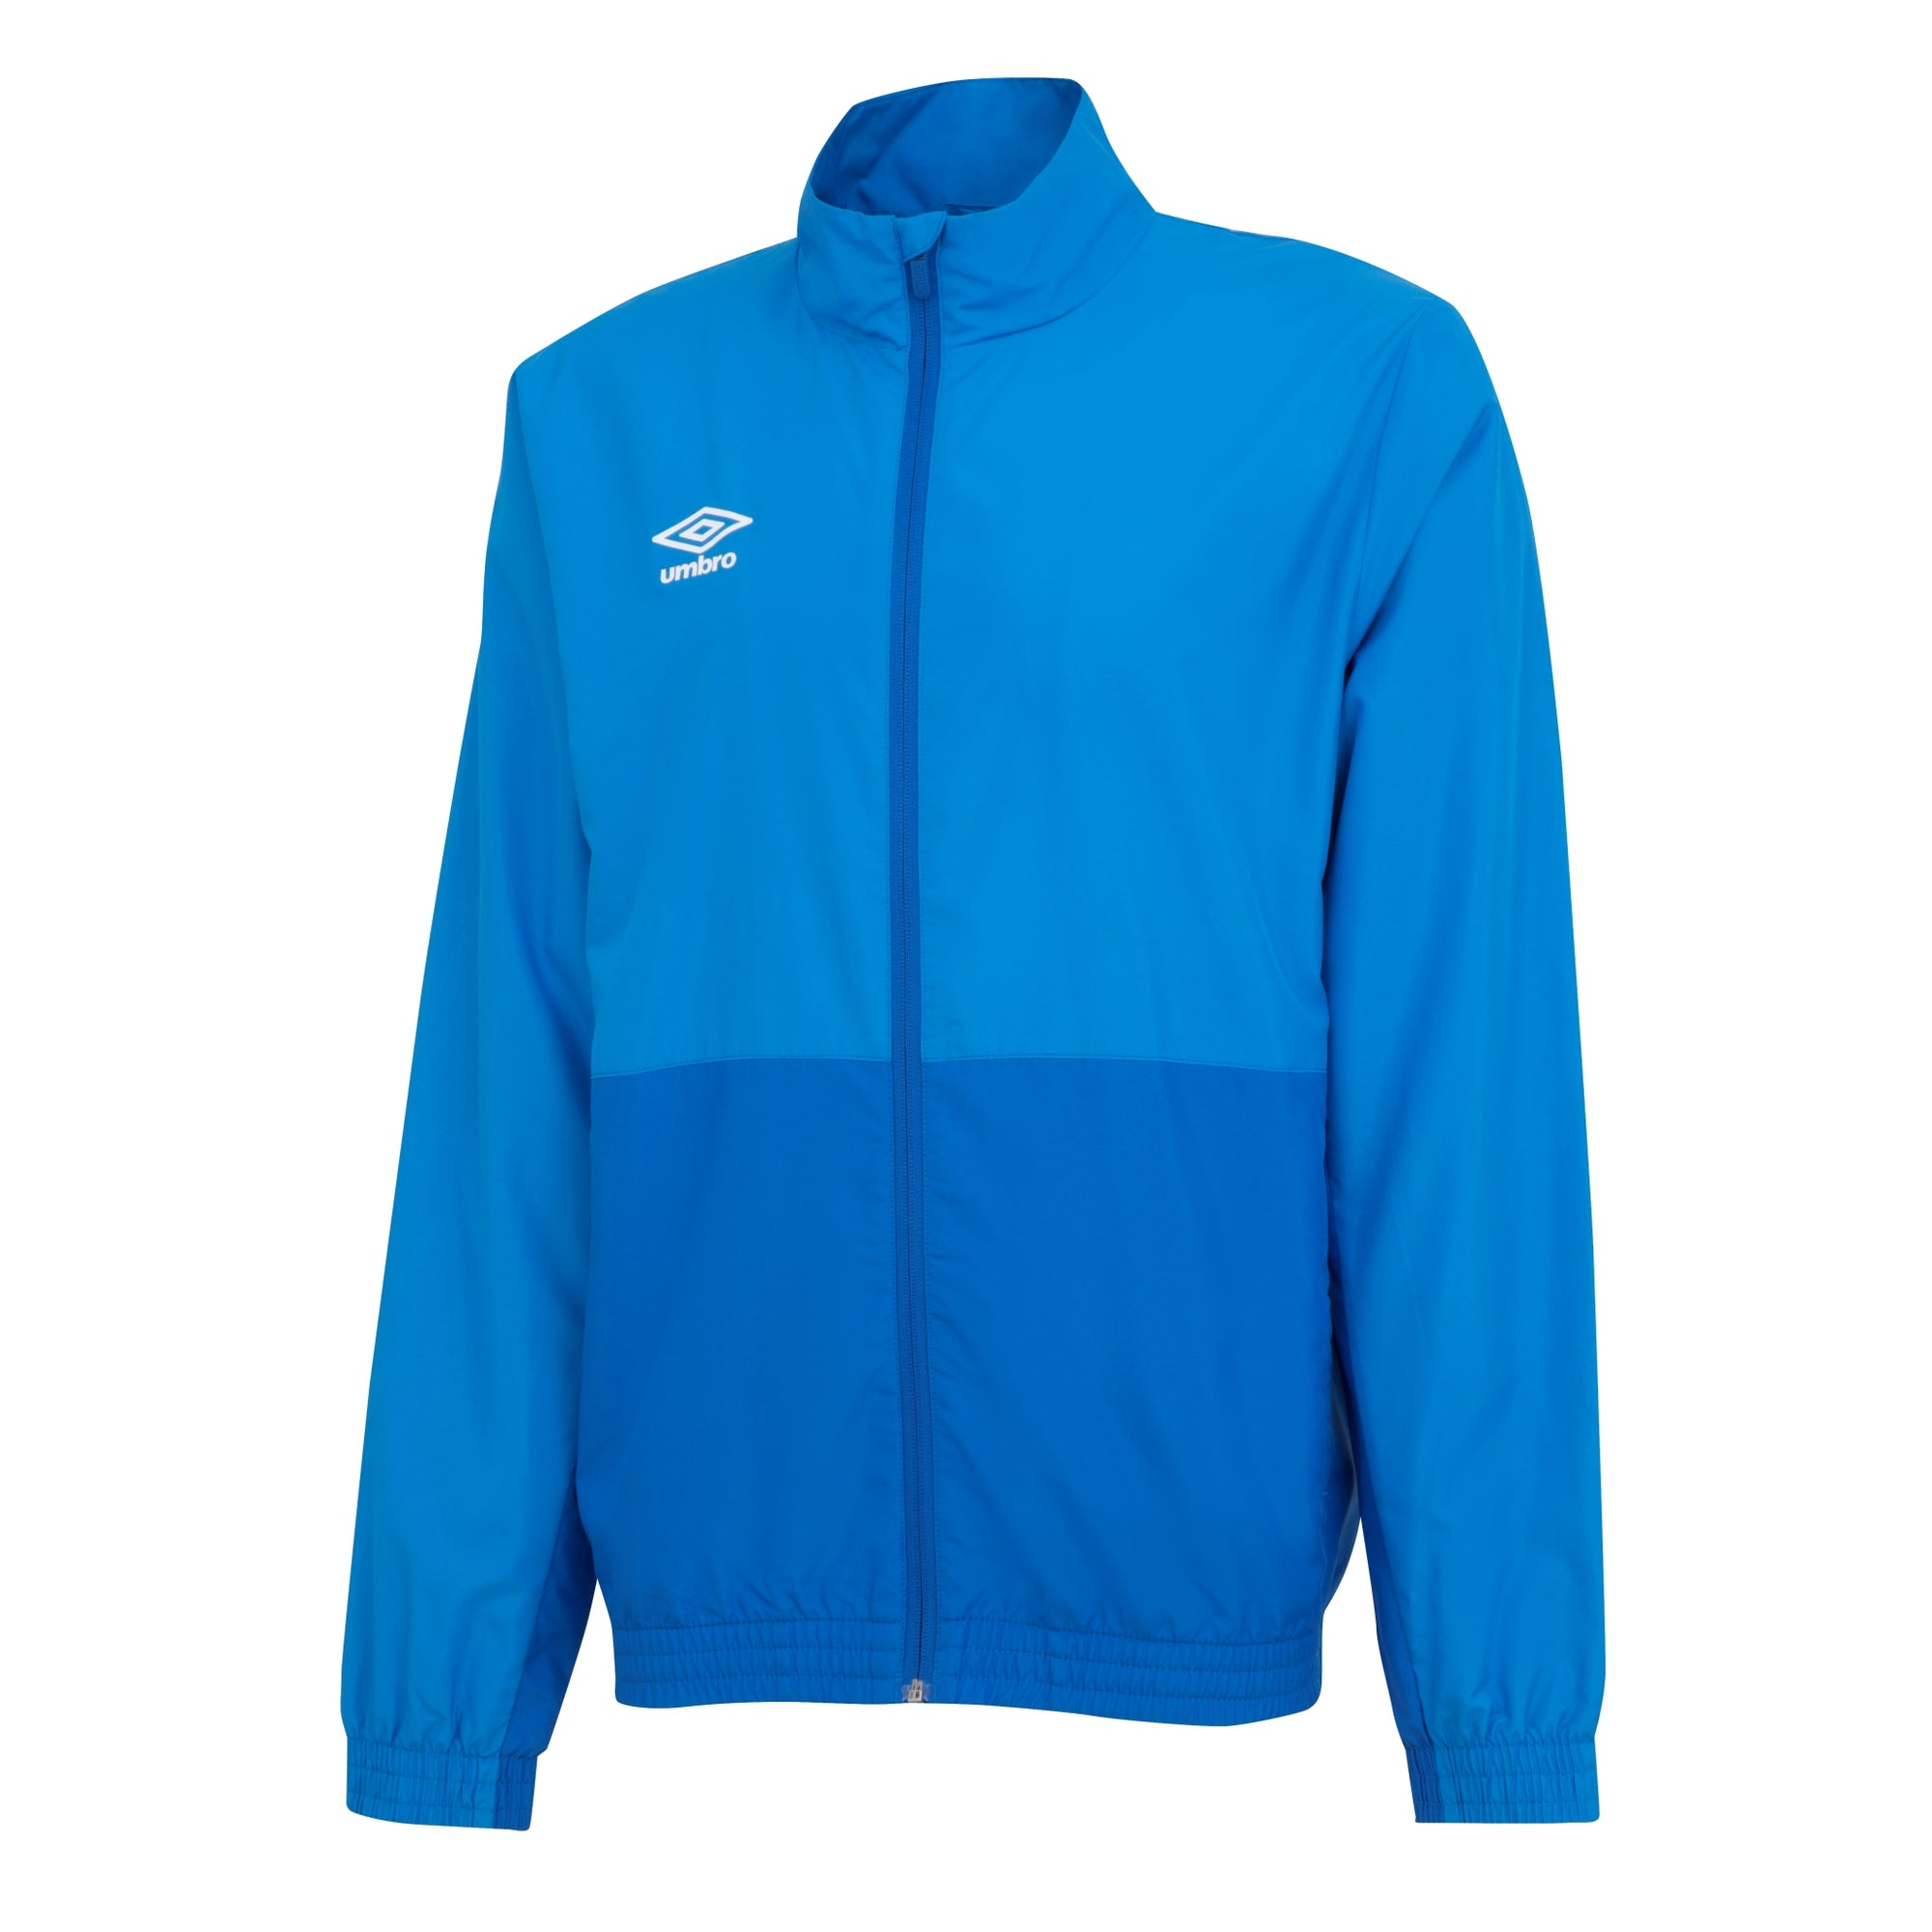 Umbro Training Woven Jacket - French Blue/Royal